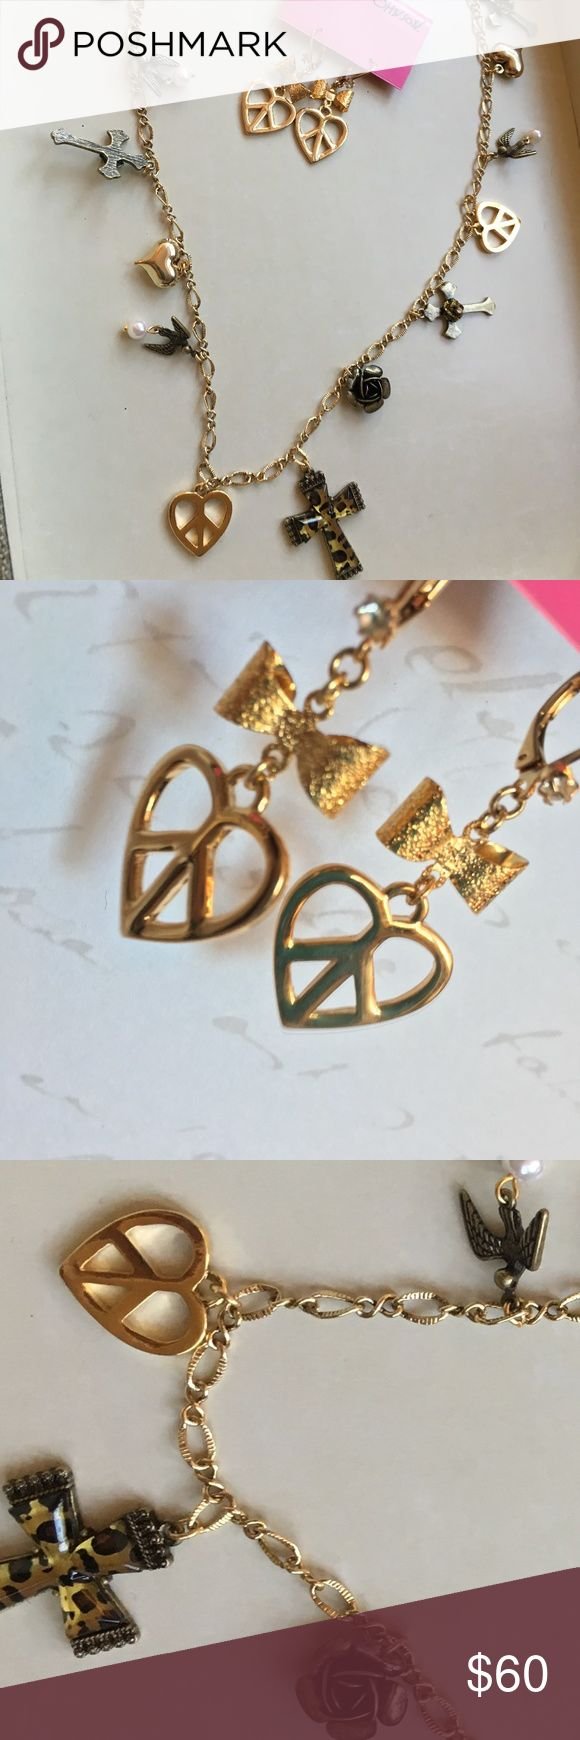 Gold Heart Peace Sign Bow Necklace w/earrings BETSEY JOHNSON Gold Heart Peace Sign Bow Necklace with matching earrings, (Willing to sell separately)    Brand NWT **All pieces AUTHENTIC**.... !!Guaranteed 100%!! Please understand my Items are already being sold at lowest possible prices, (because if I save....you save!!). Thank you for shopping my closet Betsey Johnson Jewelry Necklaces